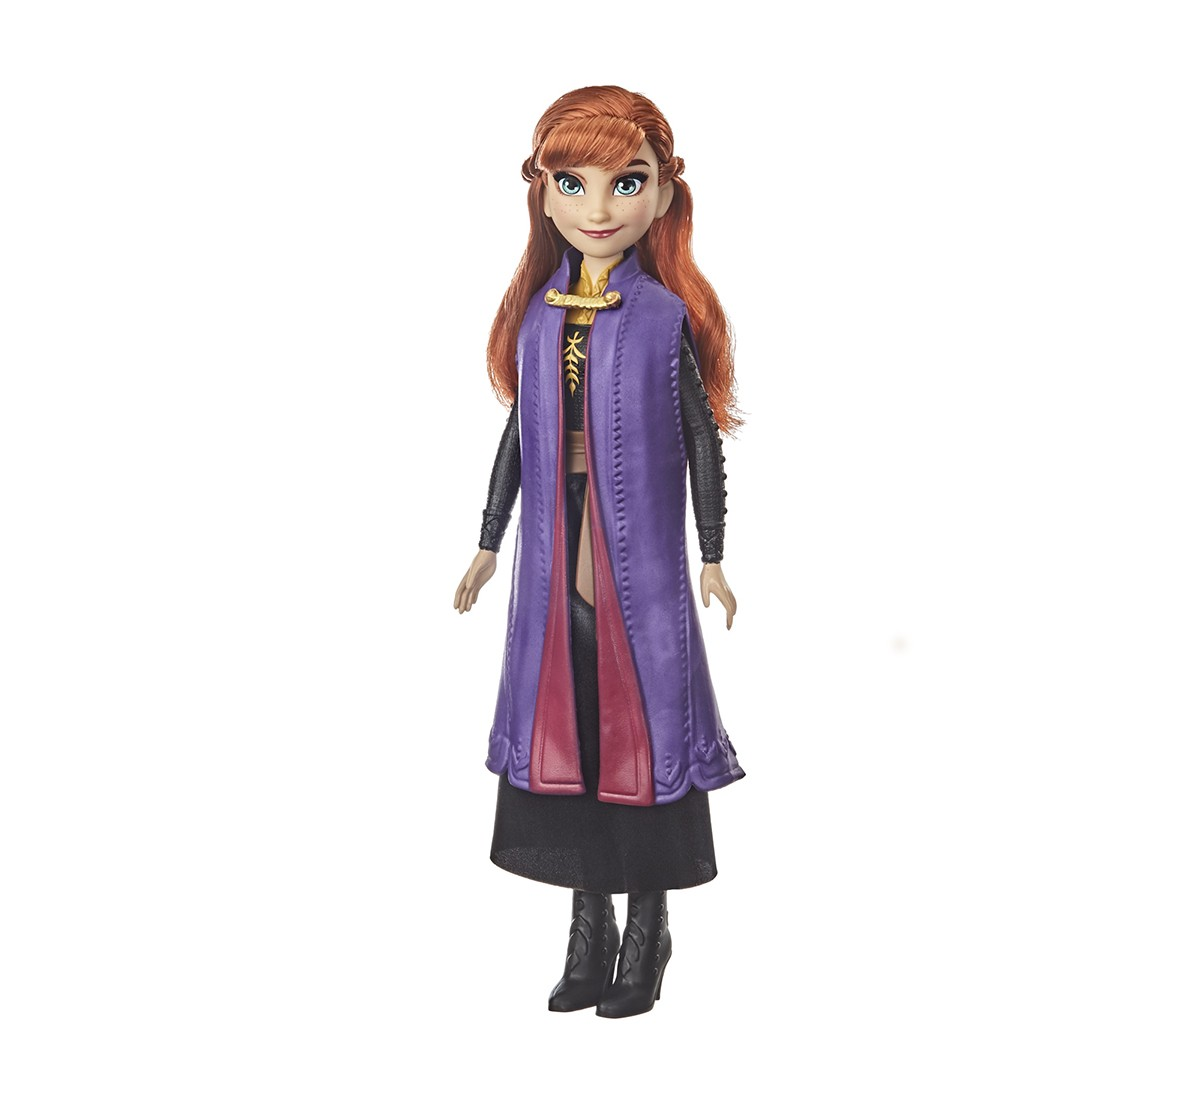 Disney Frozen 2 Anna Fashion Doll With Long Red Hair, Skirt, and Shoes, Anna Toy Inspired by Disney's Frozen 2 Movie  Dolls & Accessories for GIRLS age 3Y+